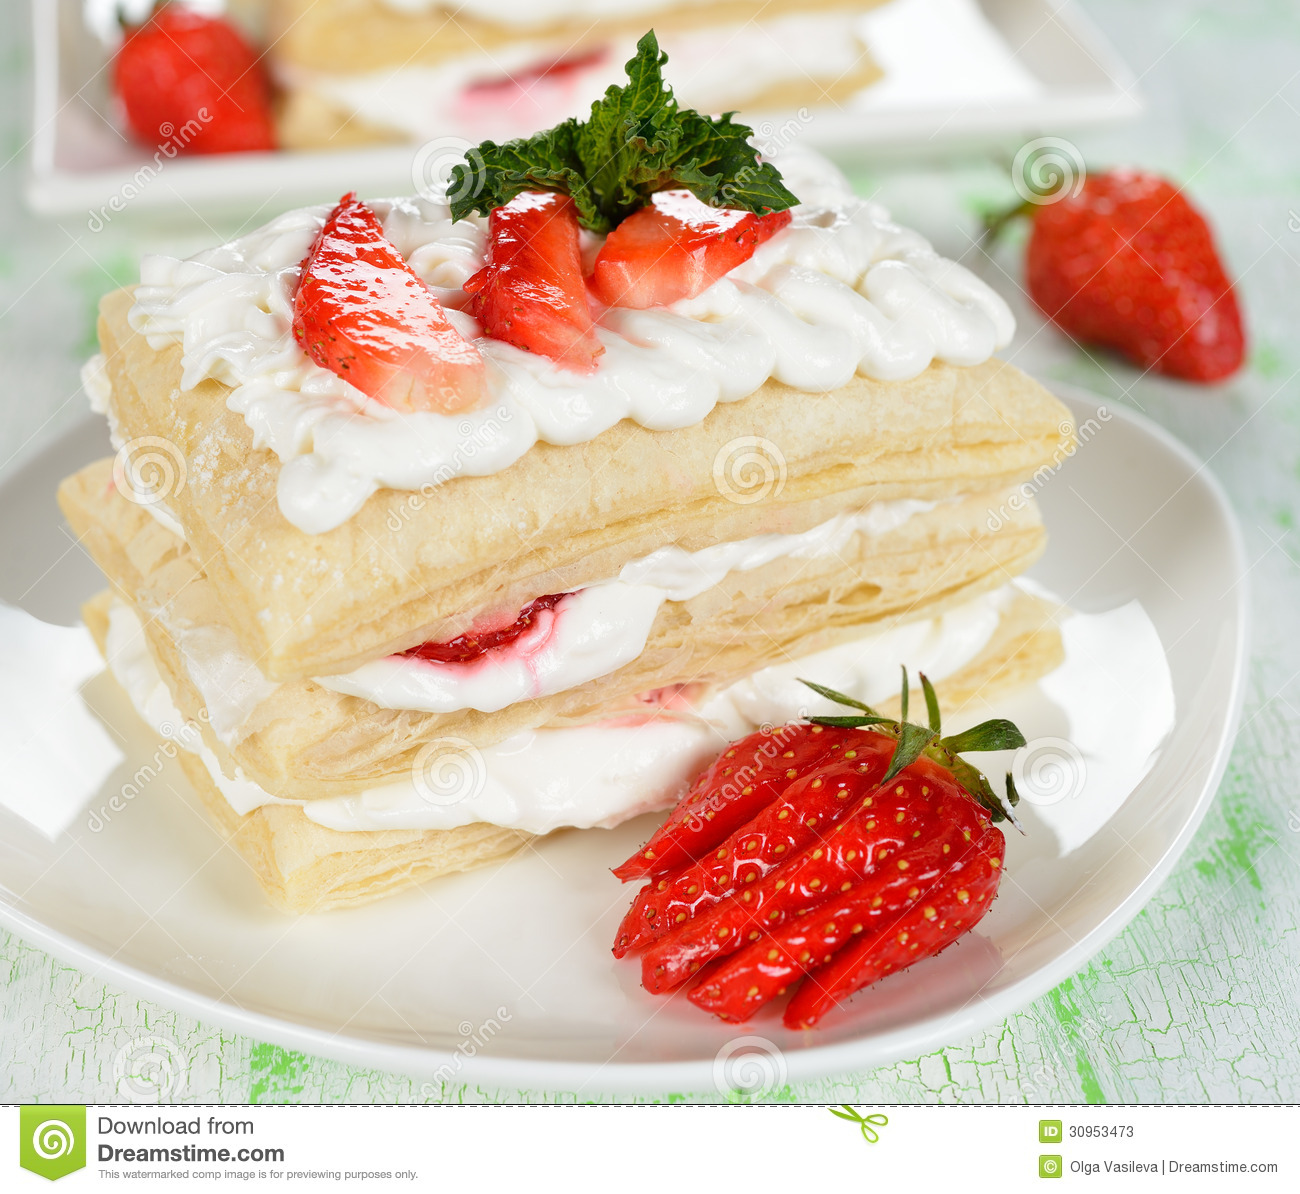 white cake with strawberries cake with strawberries stock image image of plate green 1308